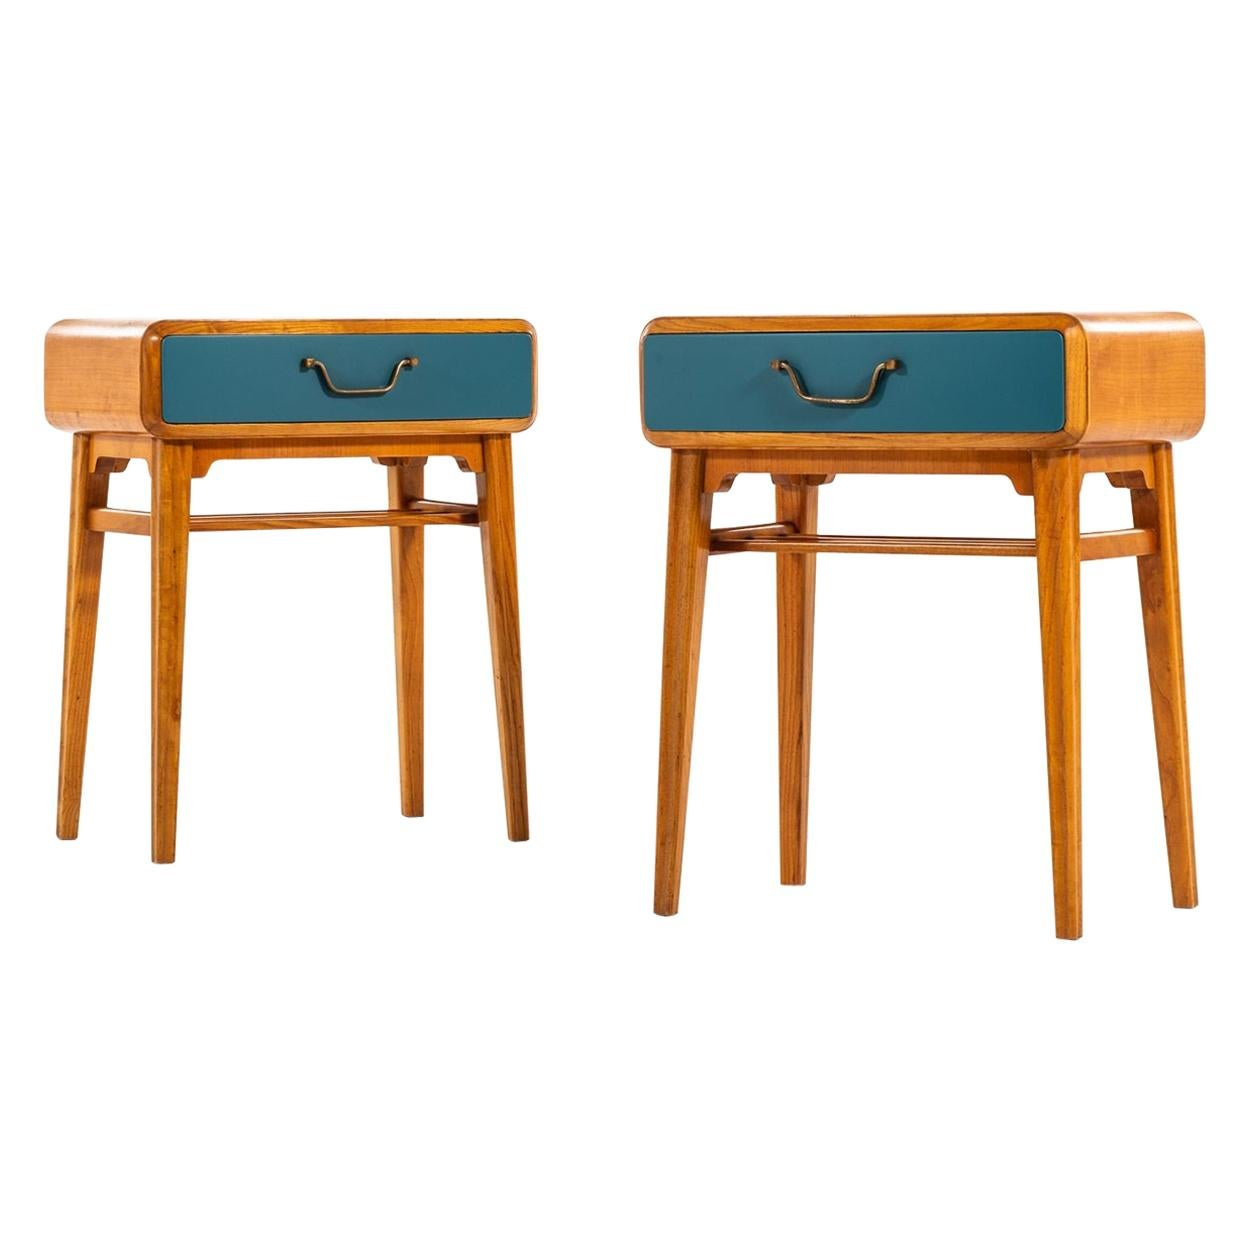 Axel Larsson Bedside Tables Produced by Bodafors in Sweden